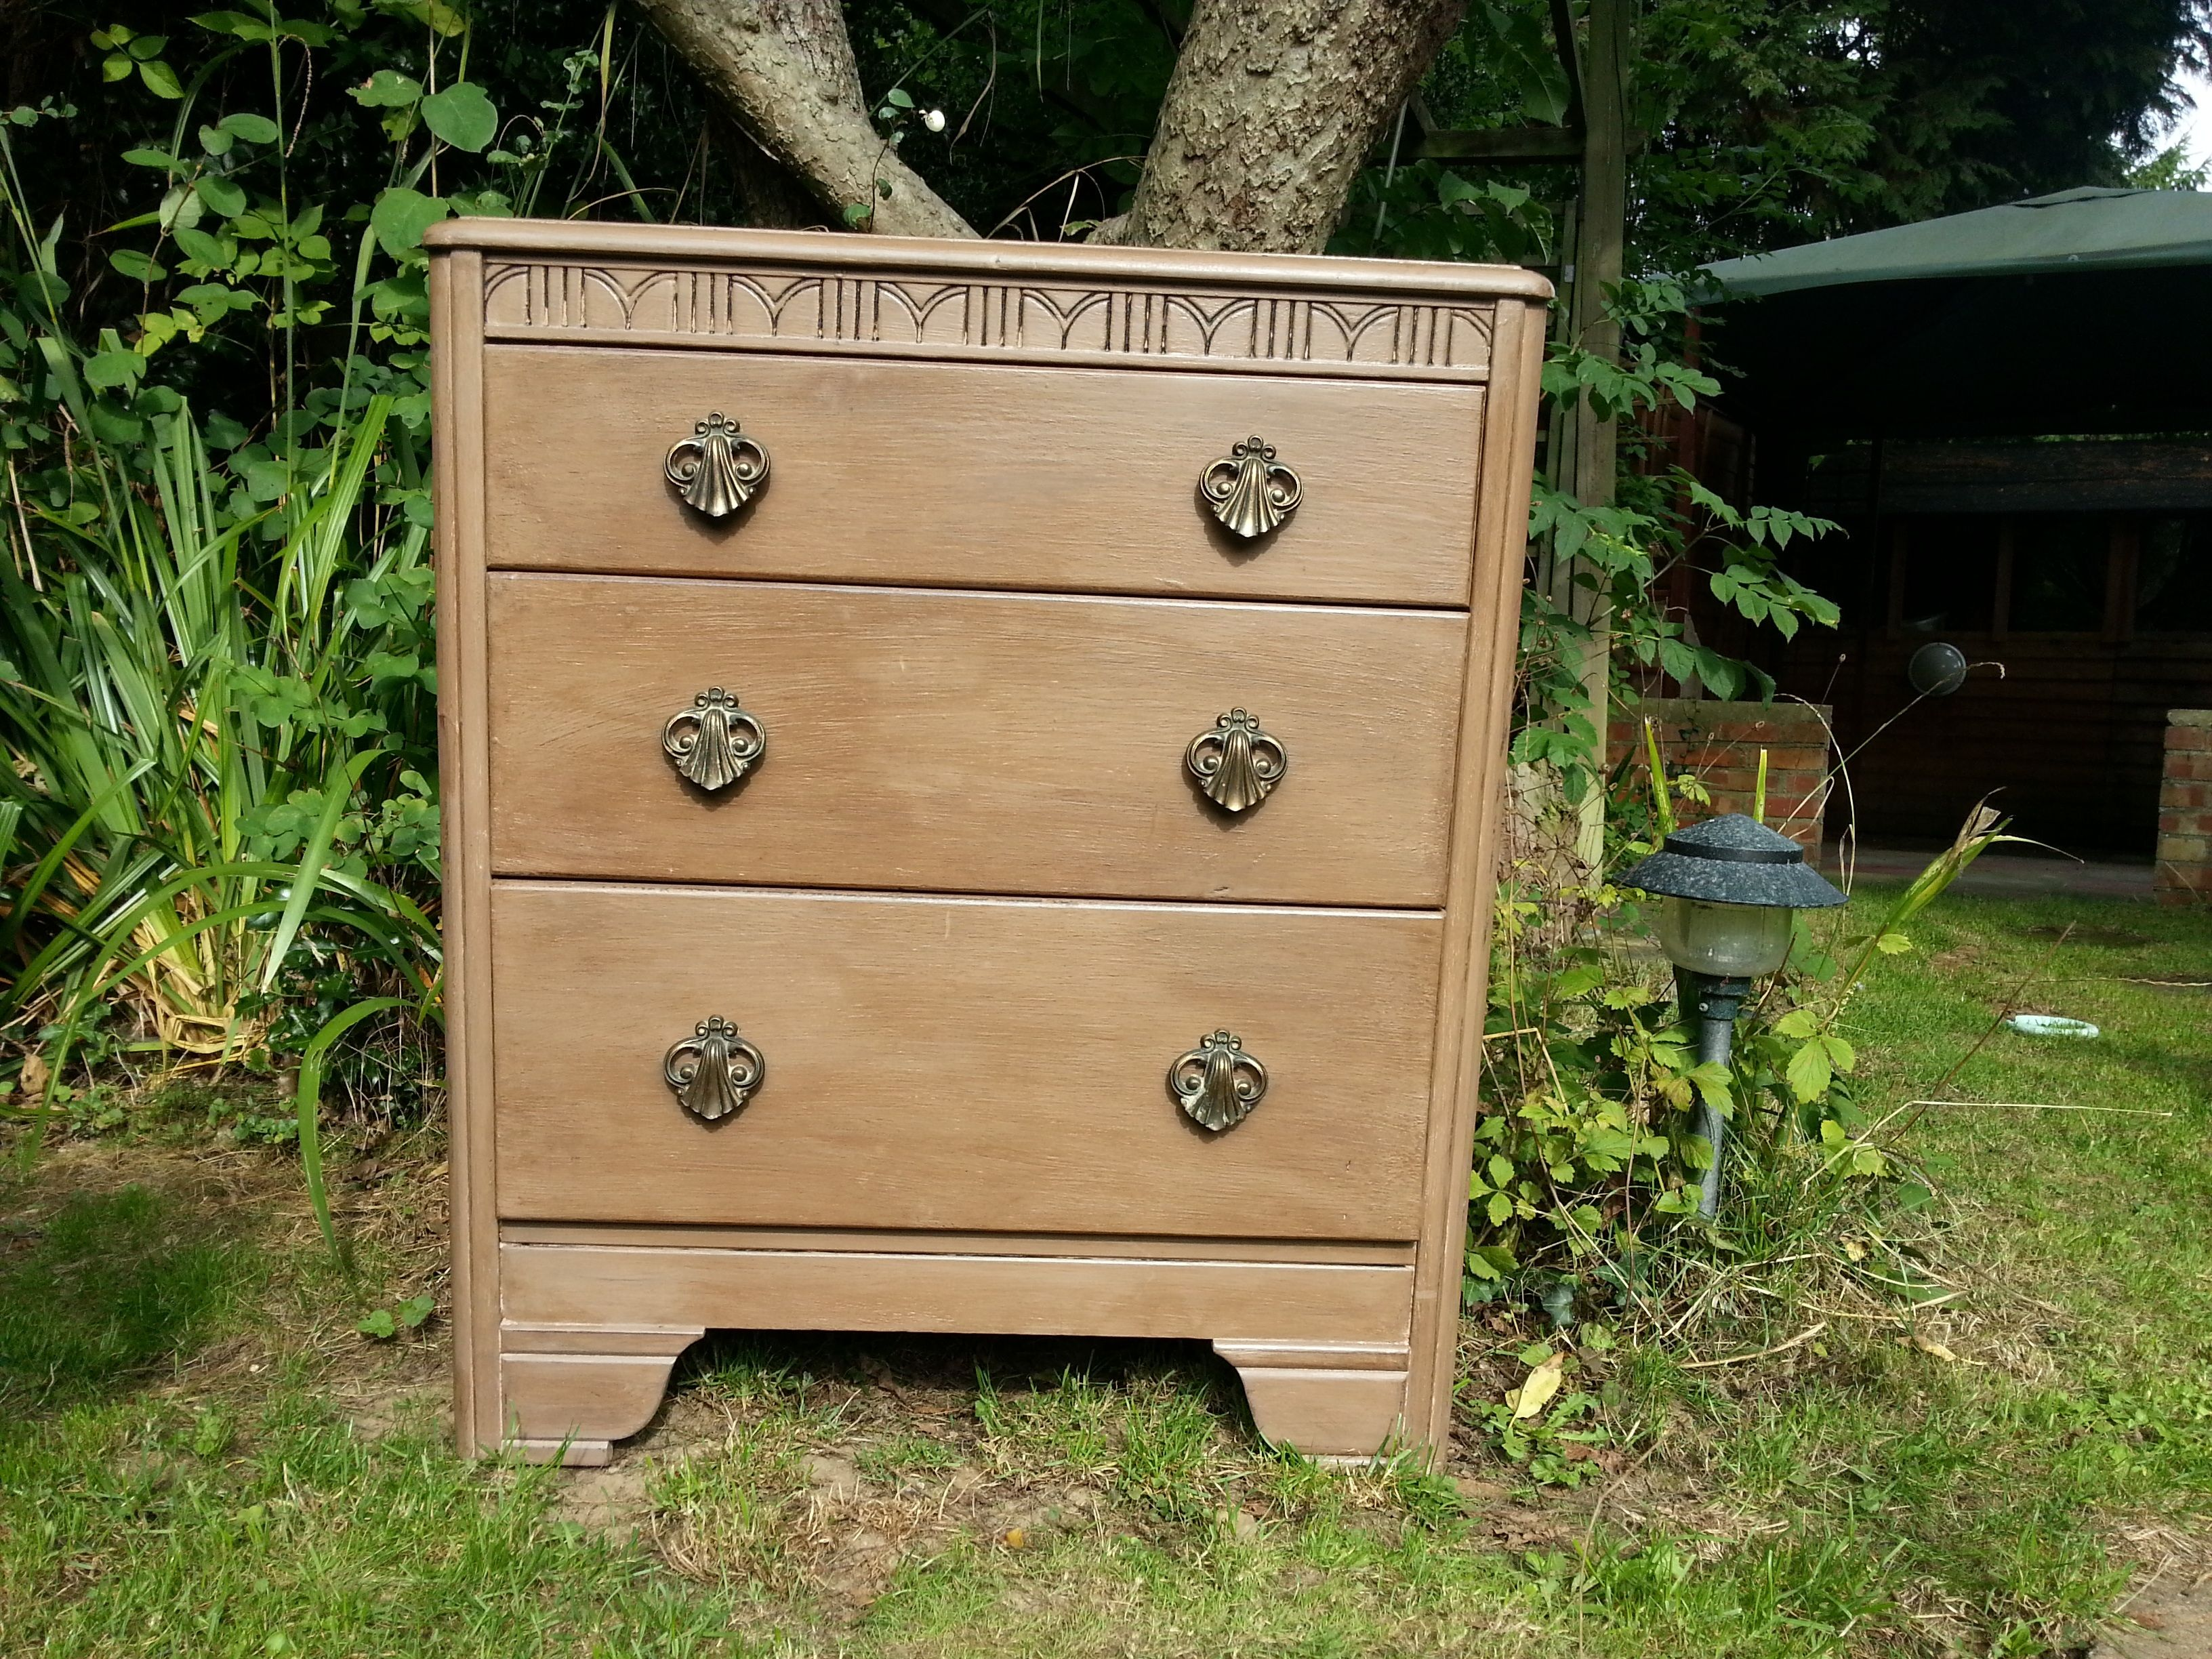 How to sell upcycled furniture uk